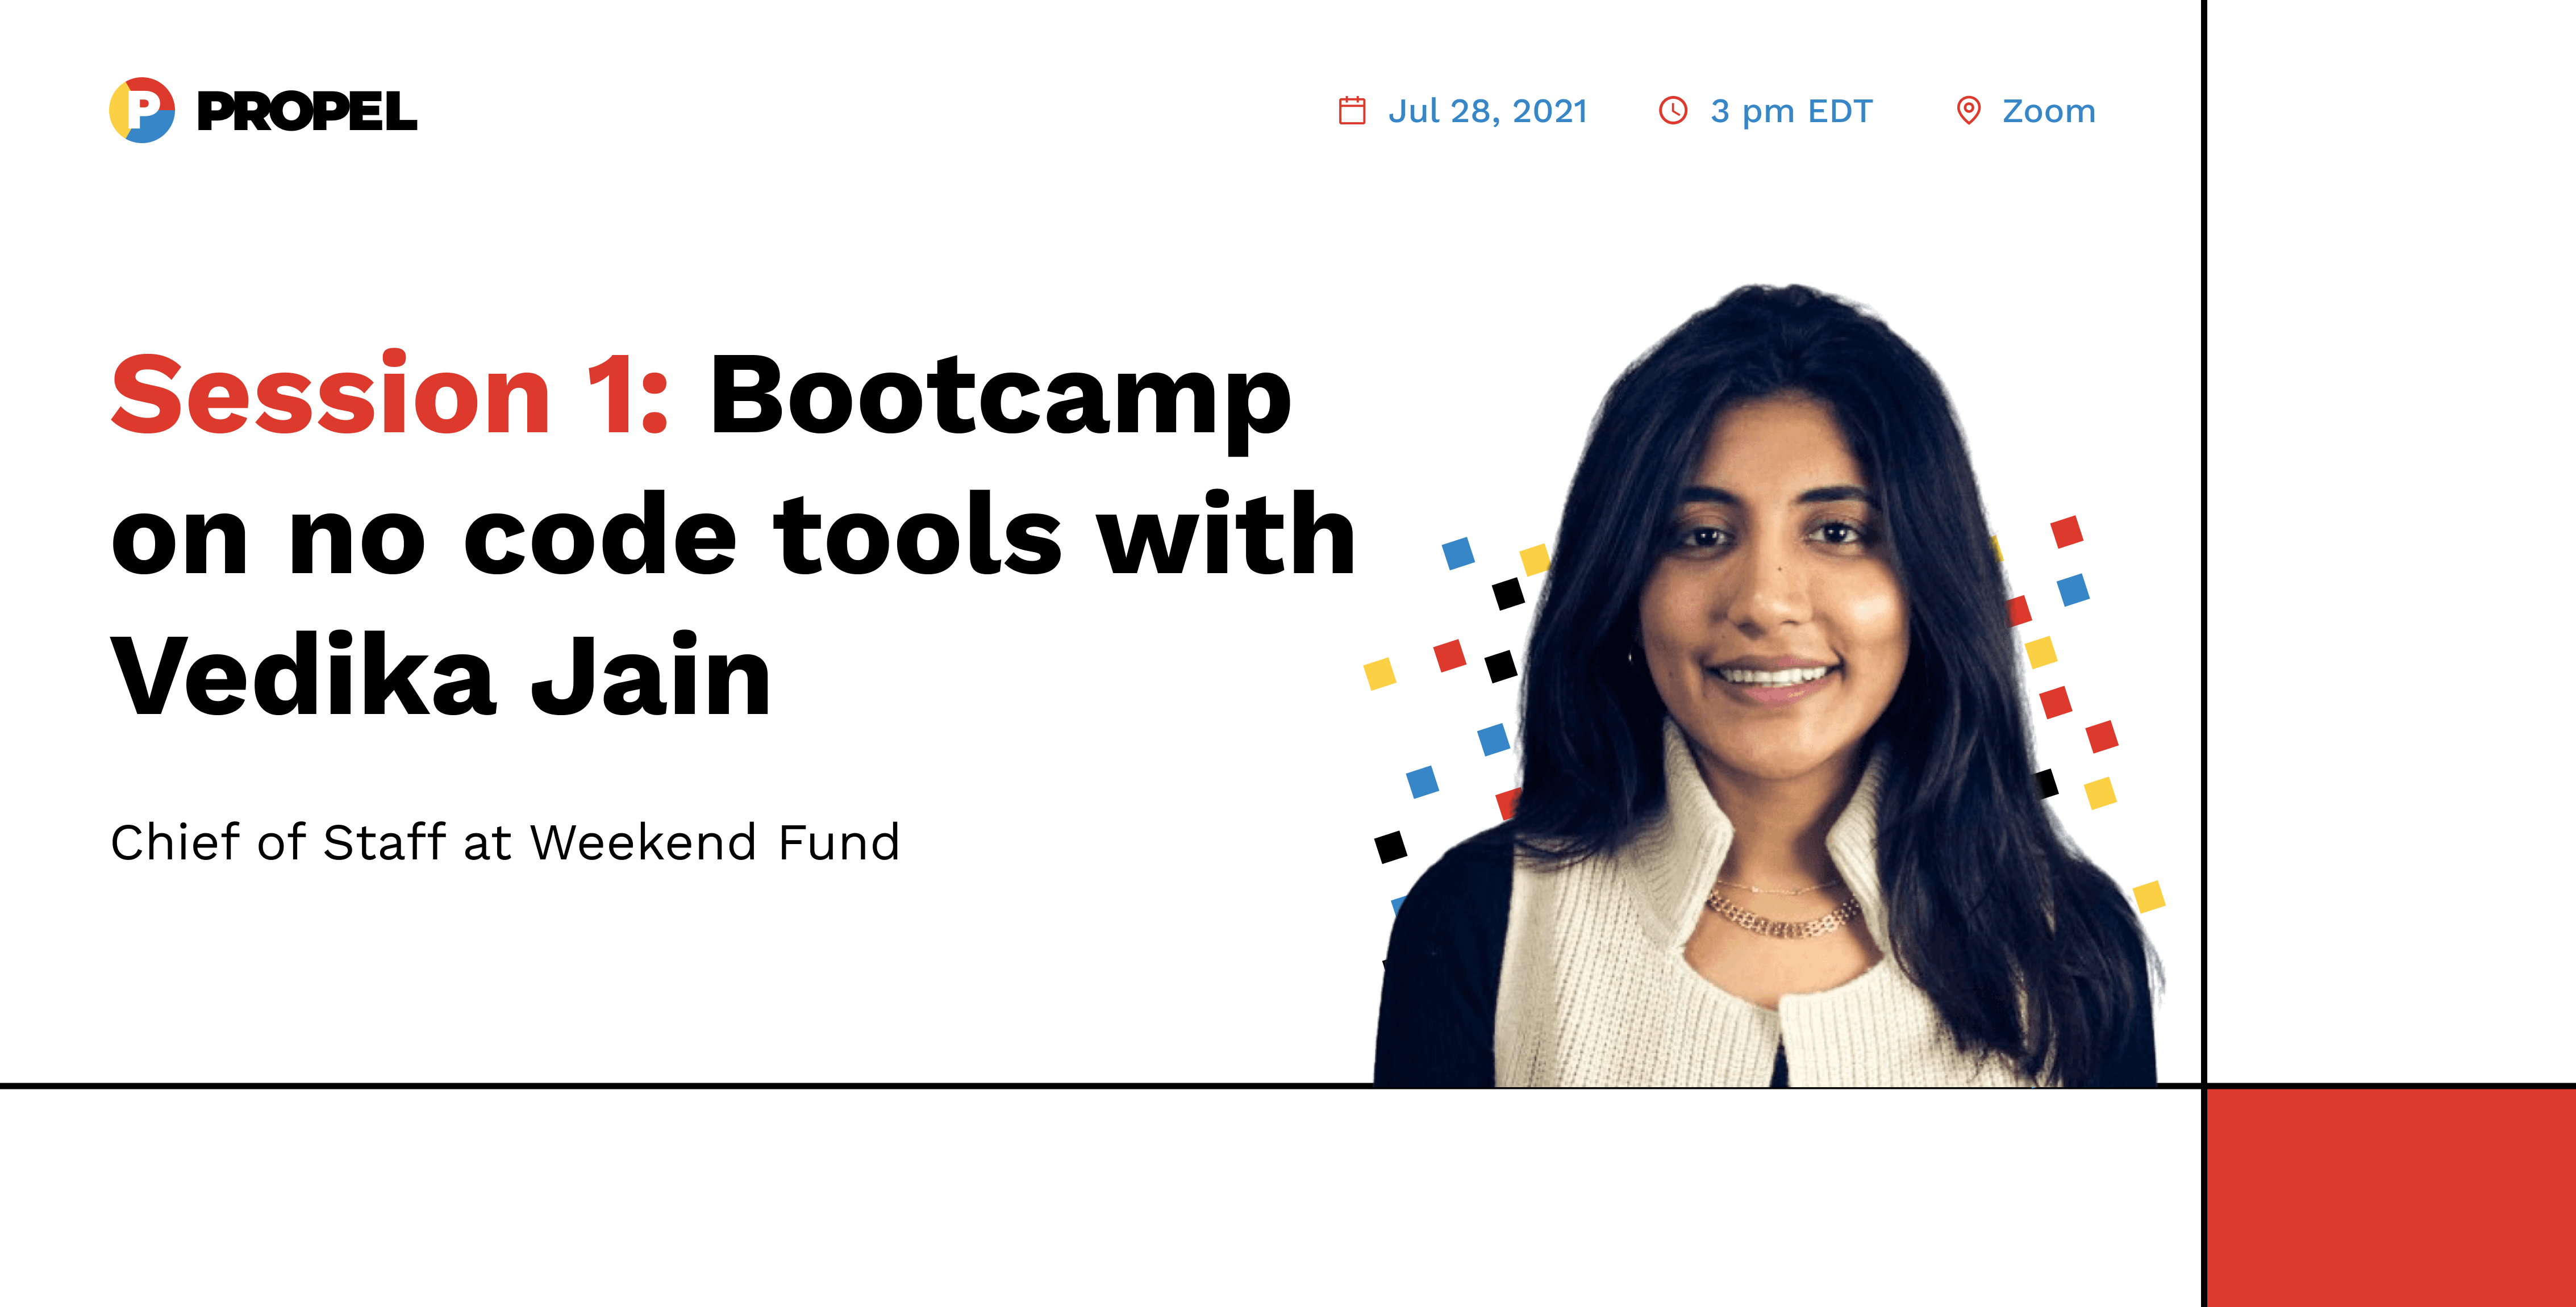 Session 1: Bootcamp on no code tools with Vedika Jain, Chief of Staff at Weekend Fund